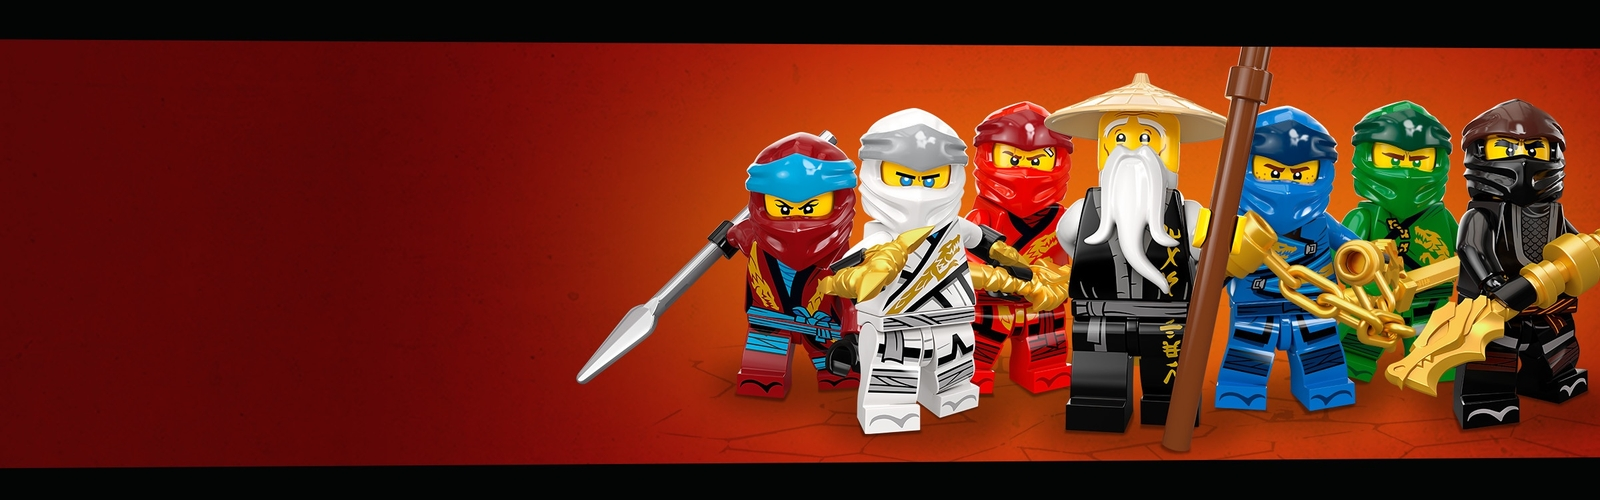 the team of LEGO NINJAGO